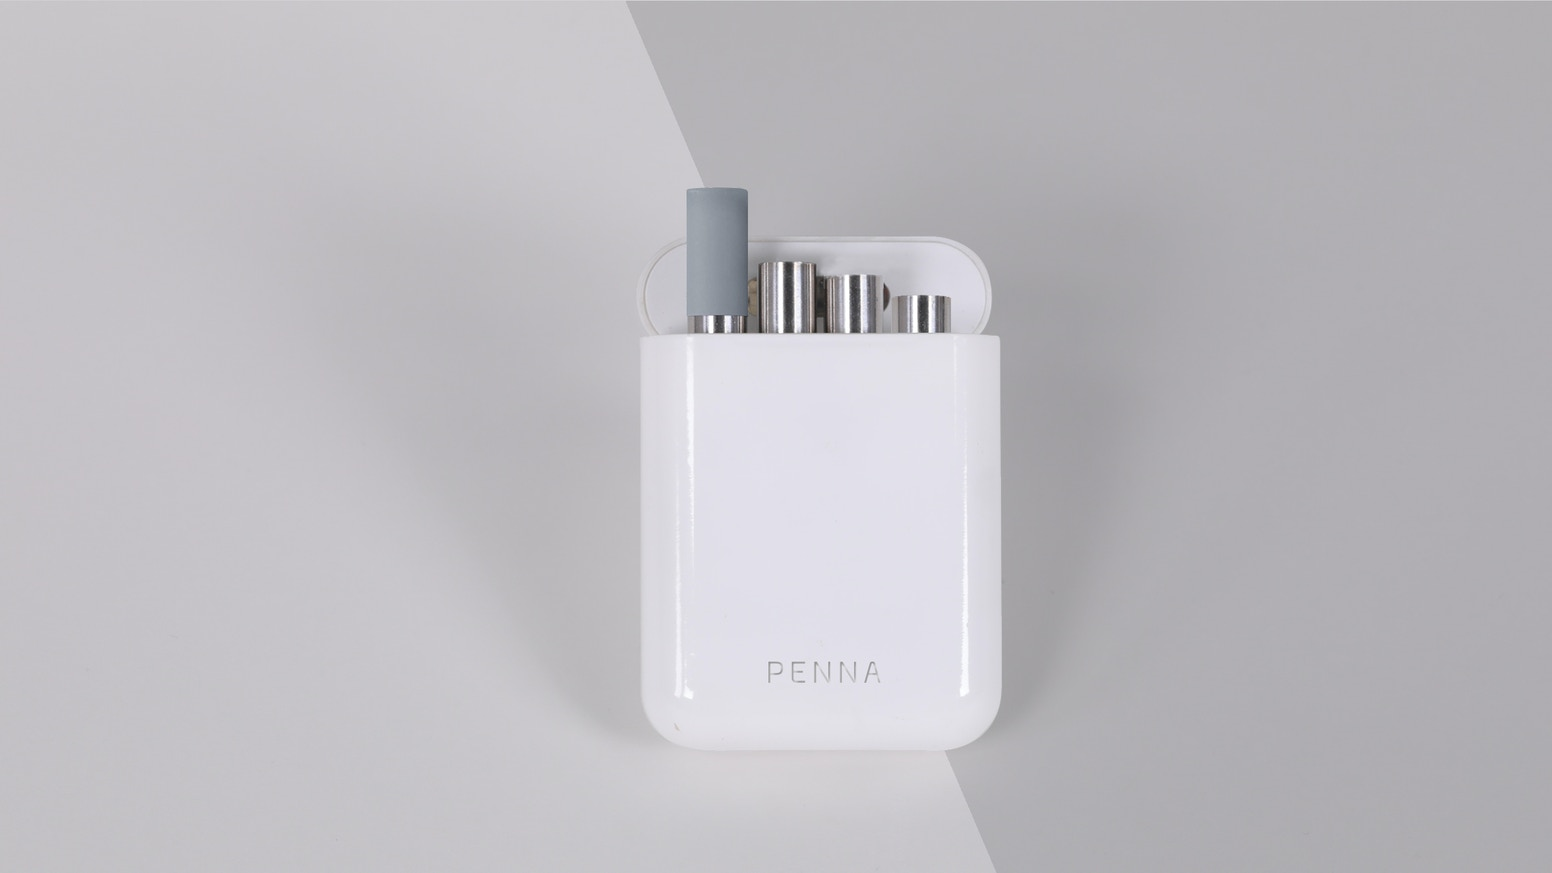 Penna Straw - The Portable Straw With UV sterilization System. No plastic. No wastage. No germs